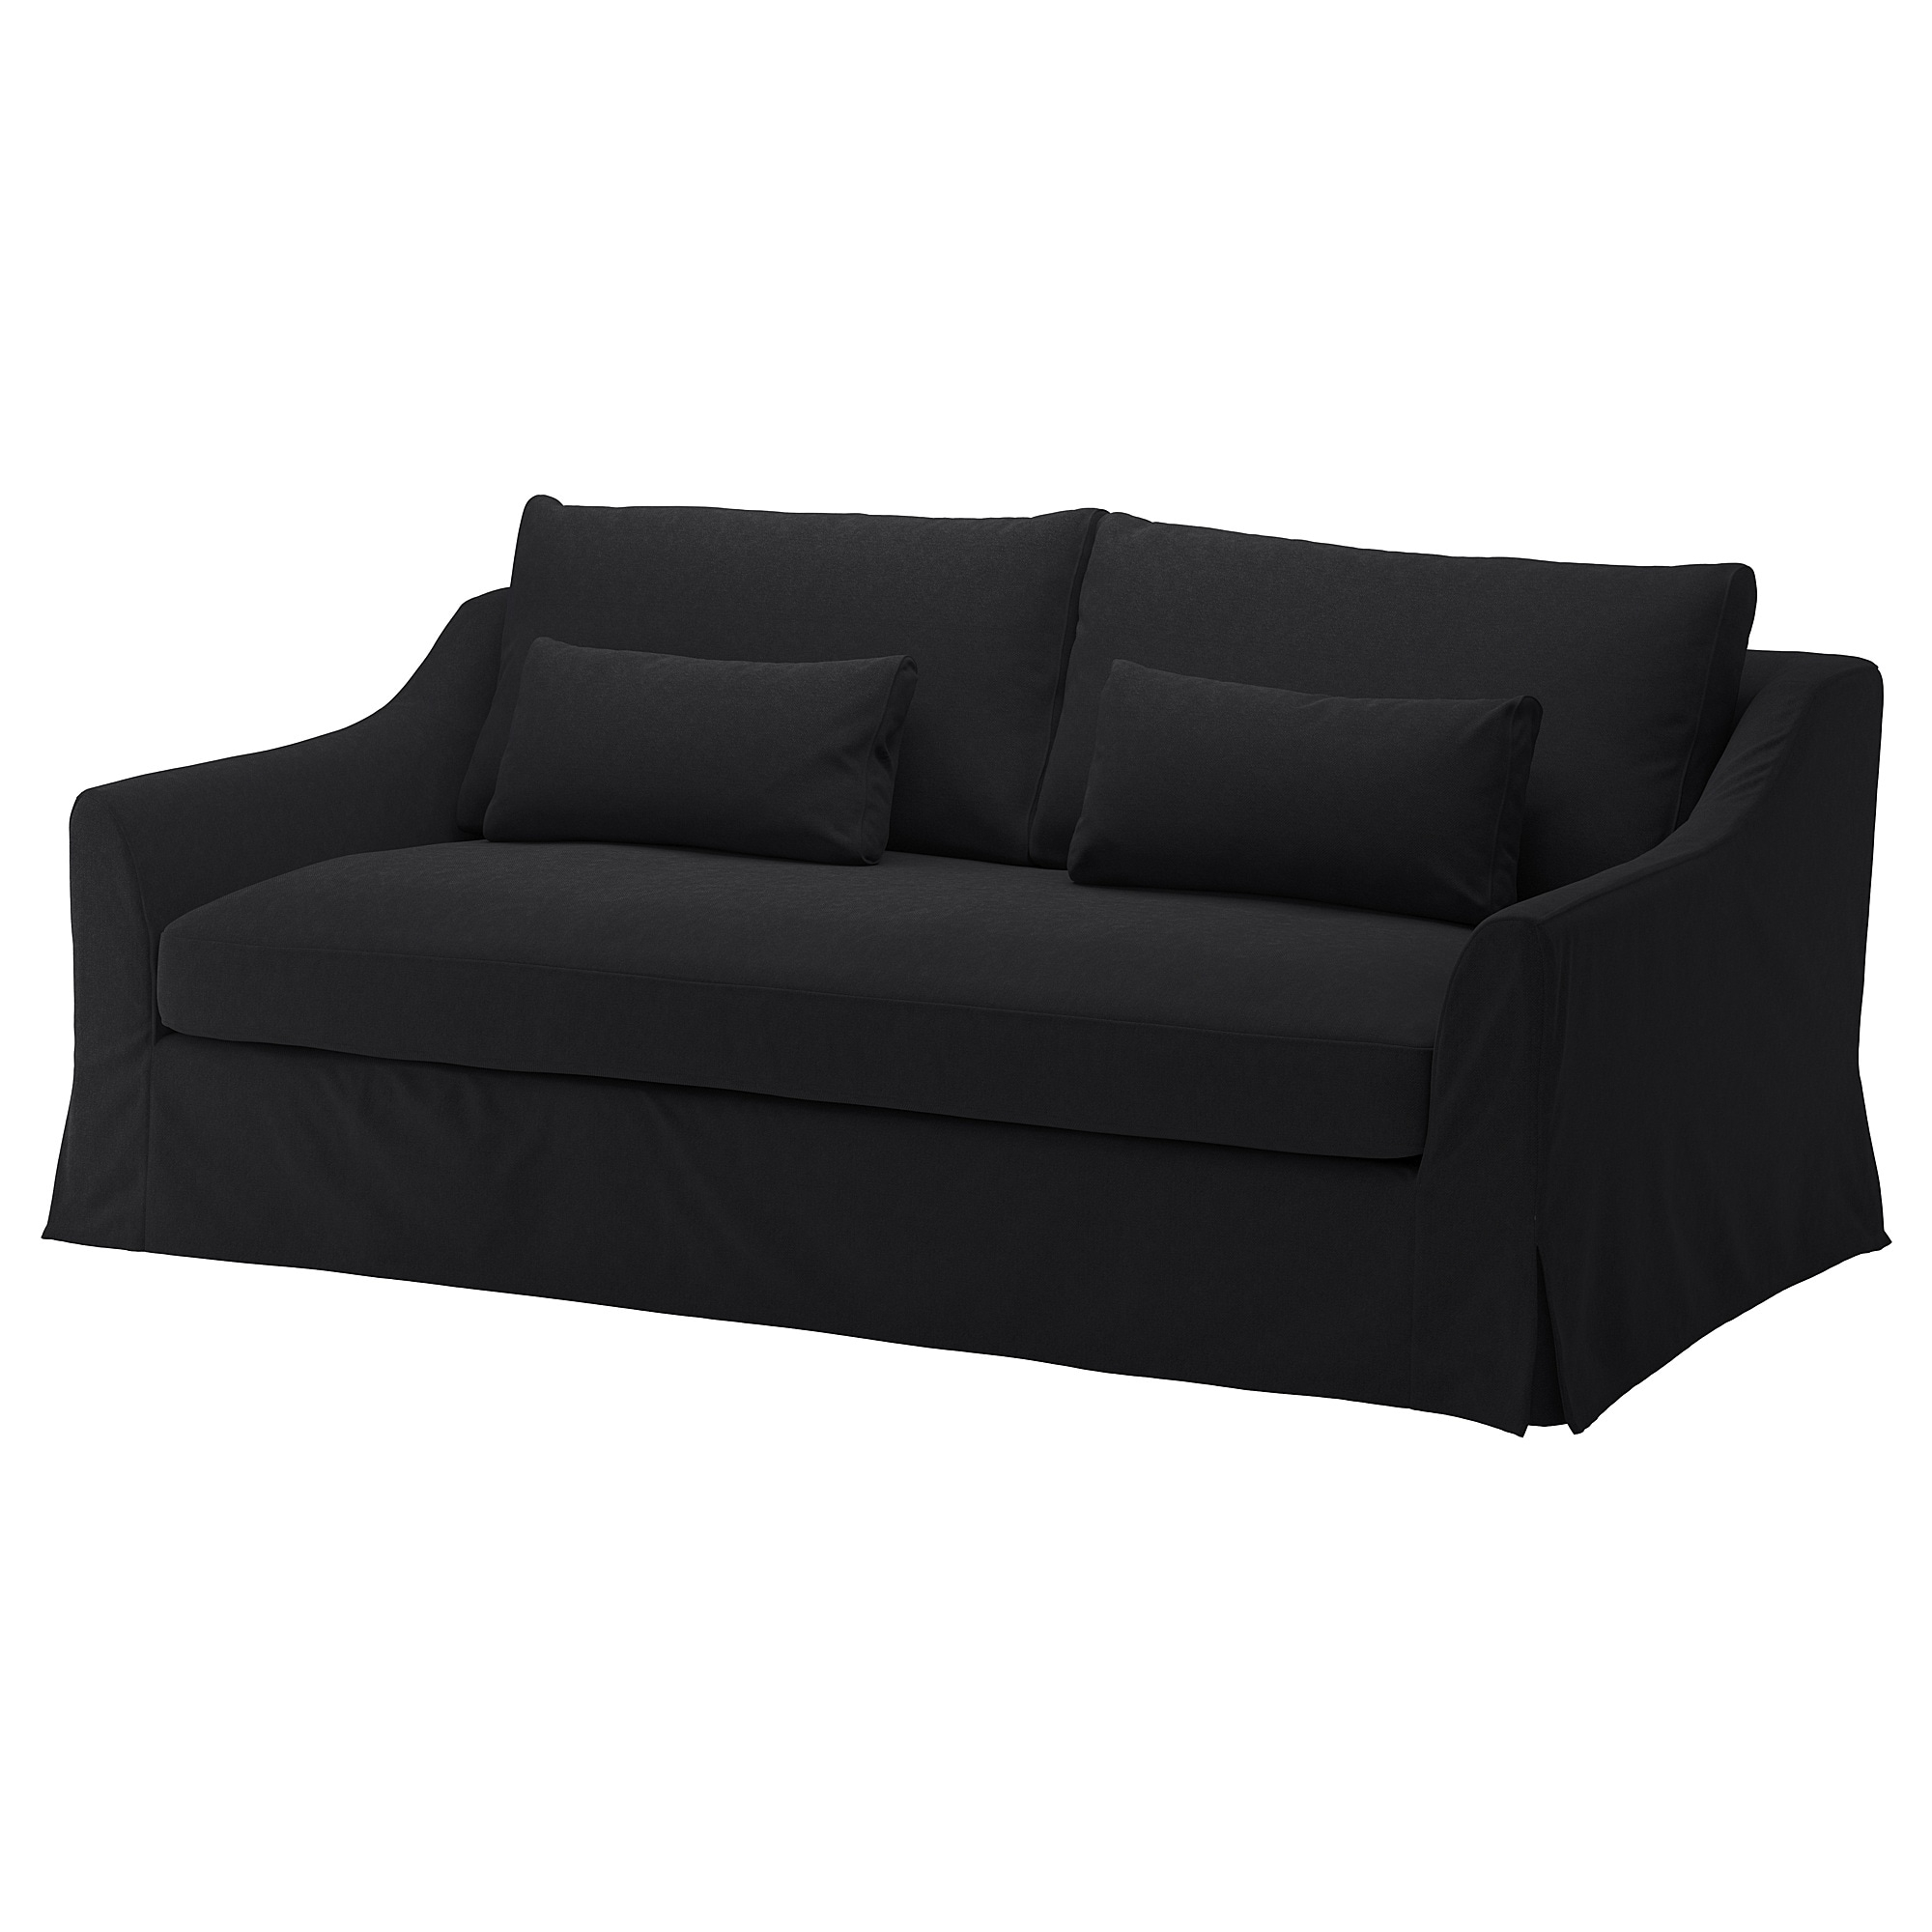 Sofas – Settees, Couches & More | Ikea With Regard To Loft Arm Sofa Chairs (Image 22 of 25)